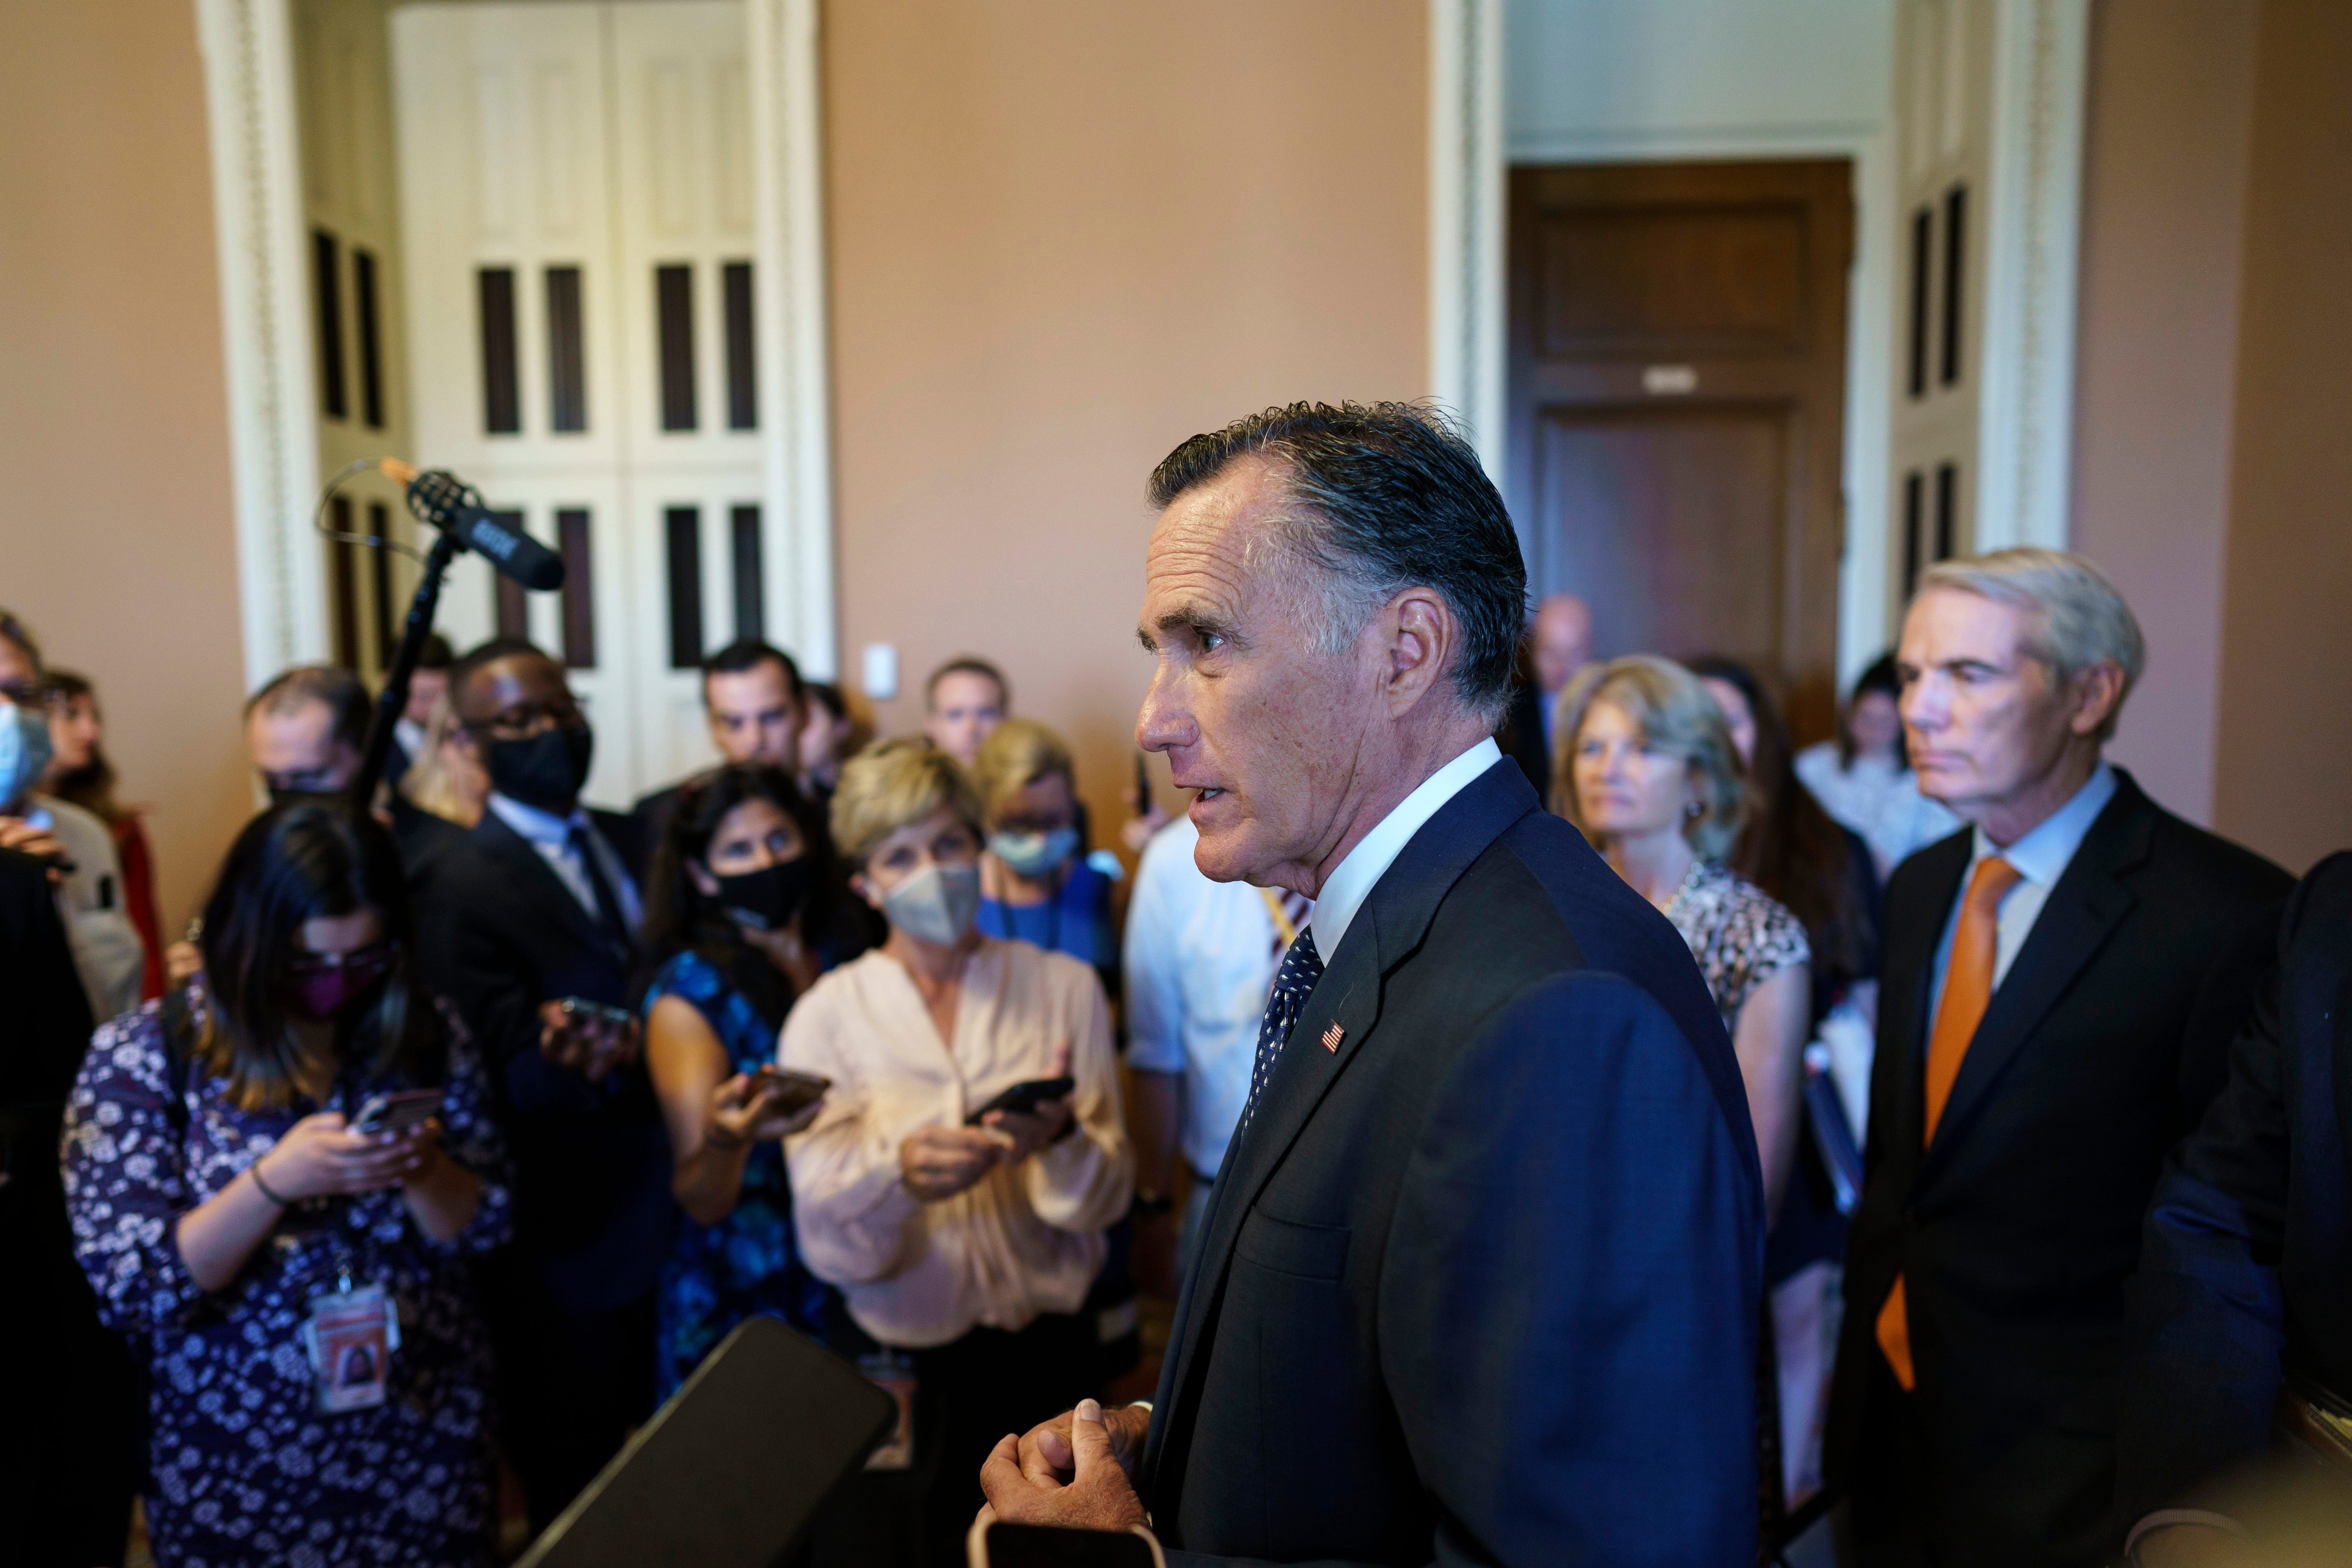 Sen. Mitt Romney, R-Utah, center, and other Senate Republicans negotiating a $1 trillion infrastructure bill with Democrats, announce they have reached agreement on the major outstanding issues and are ready to vote to take up the bill, at the Capitol in Washington on July 28, 2021.